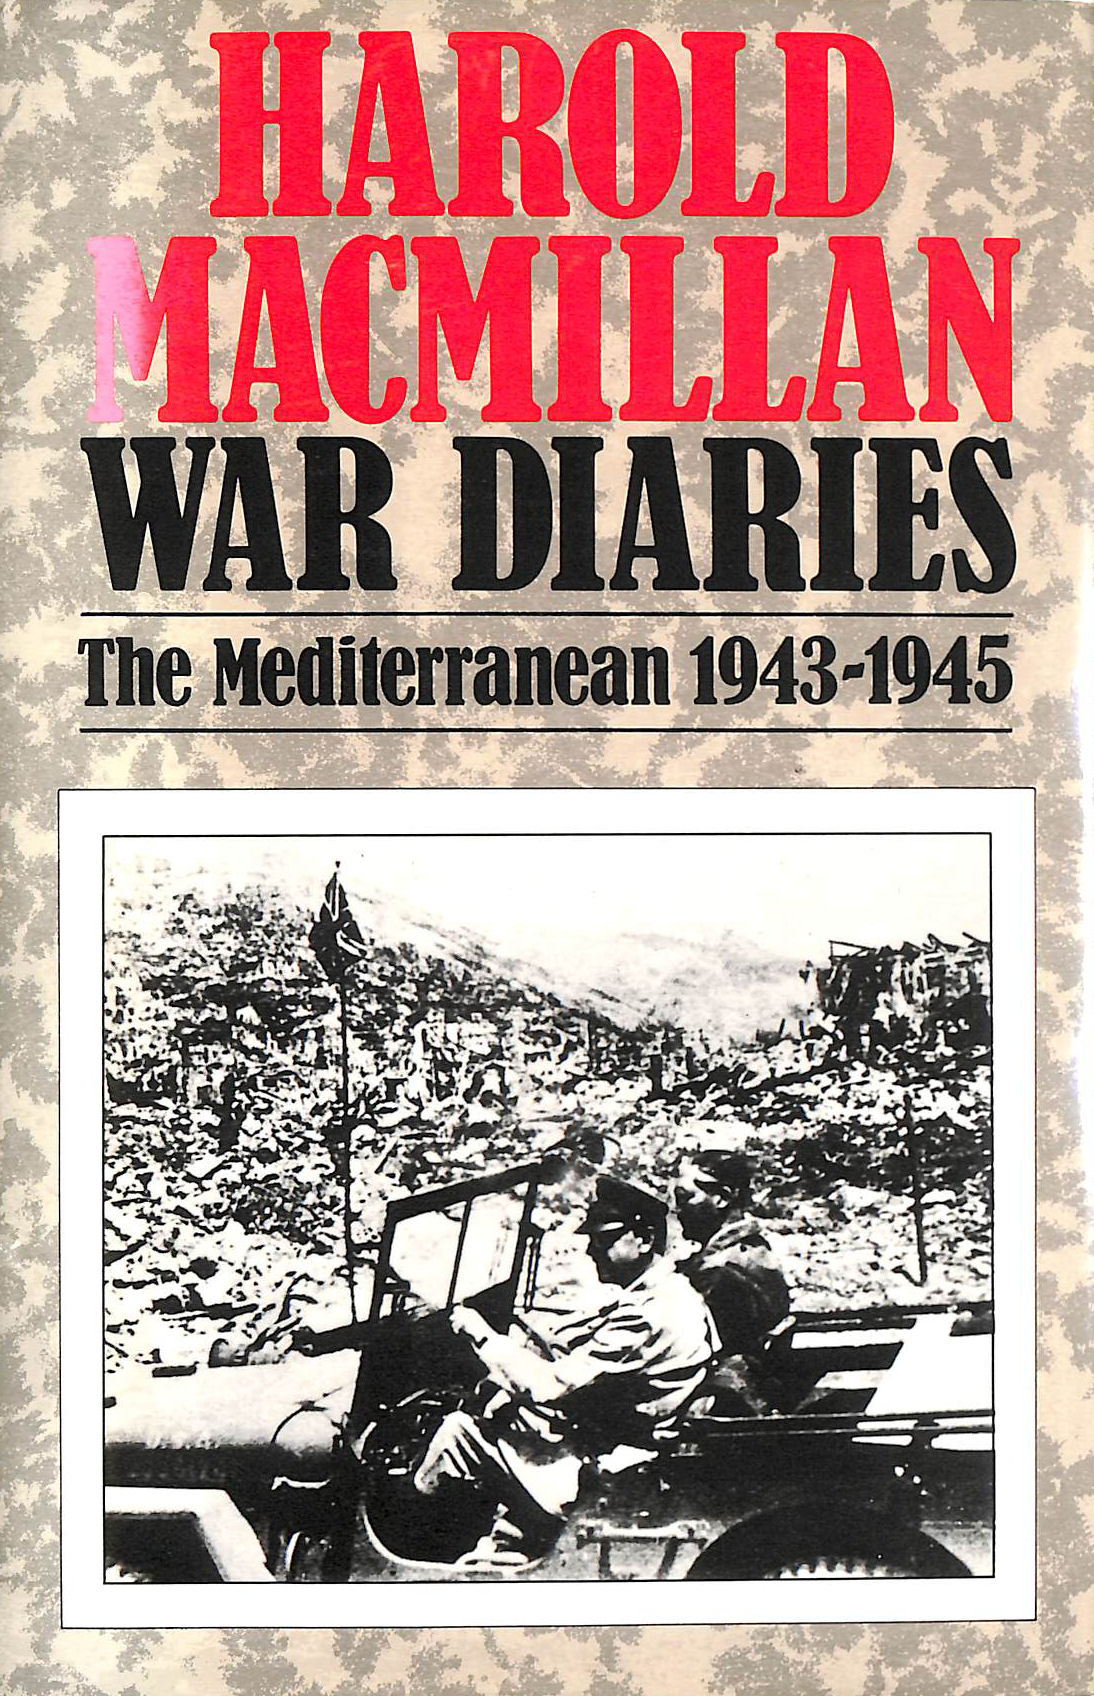 Image for Harold Macmillan War Diaries: The Mediterranean, 1943-45